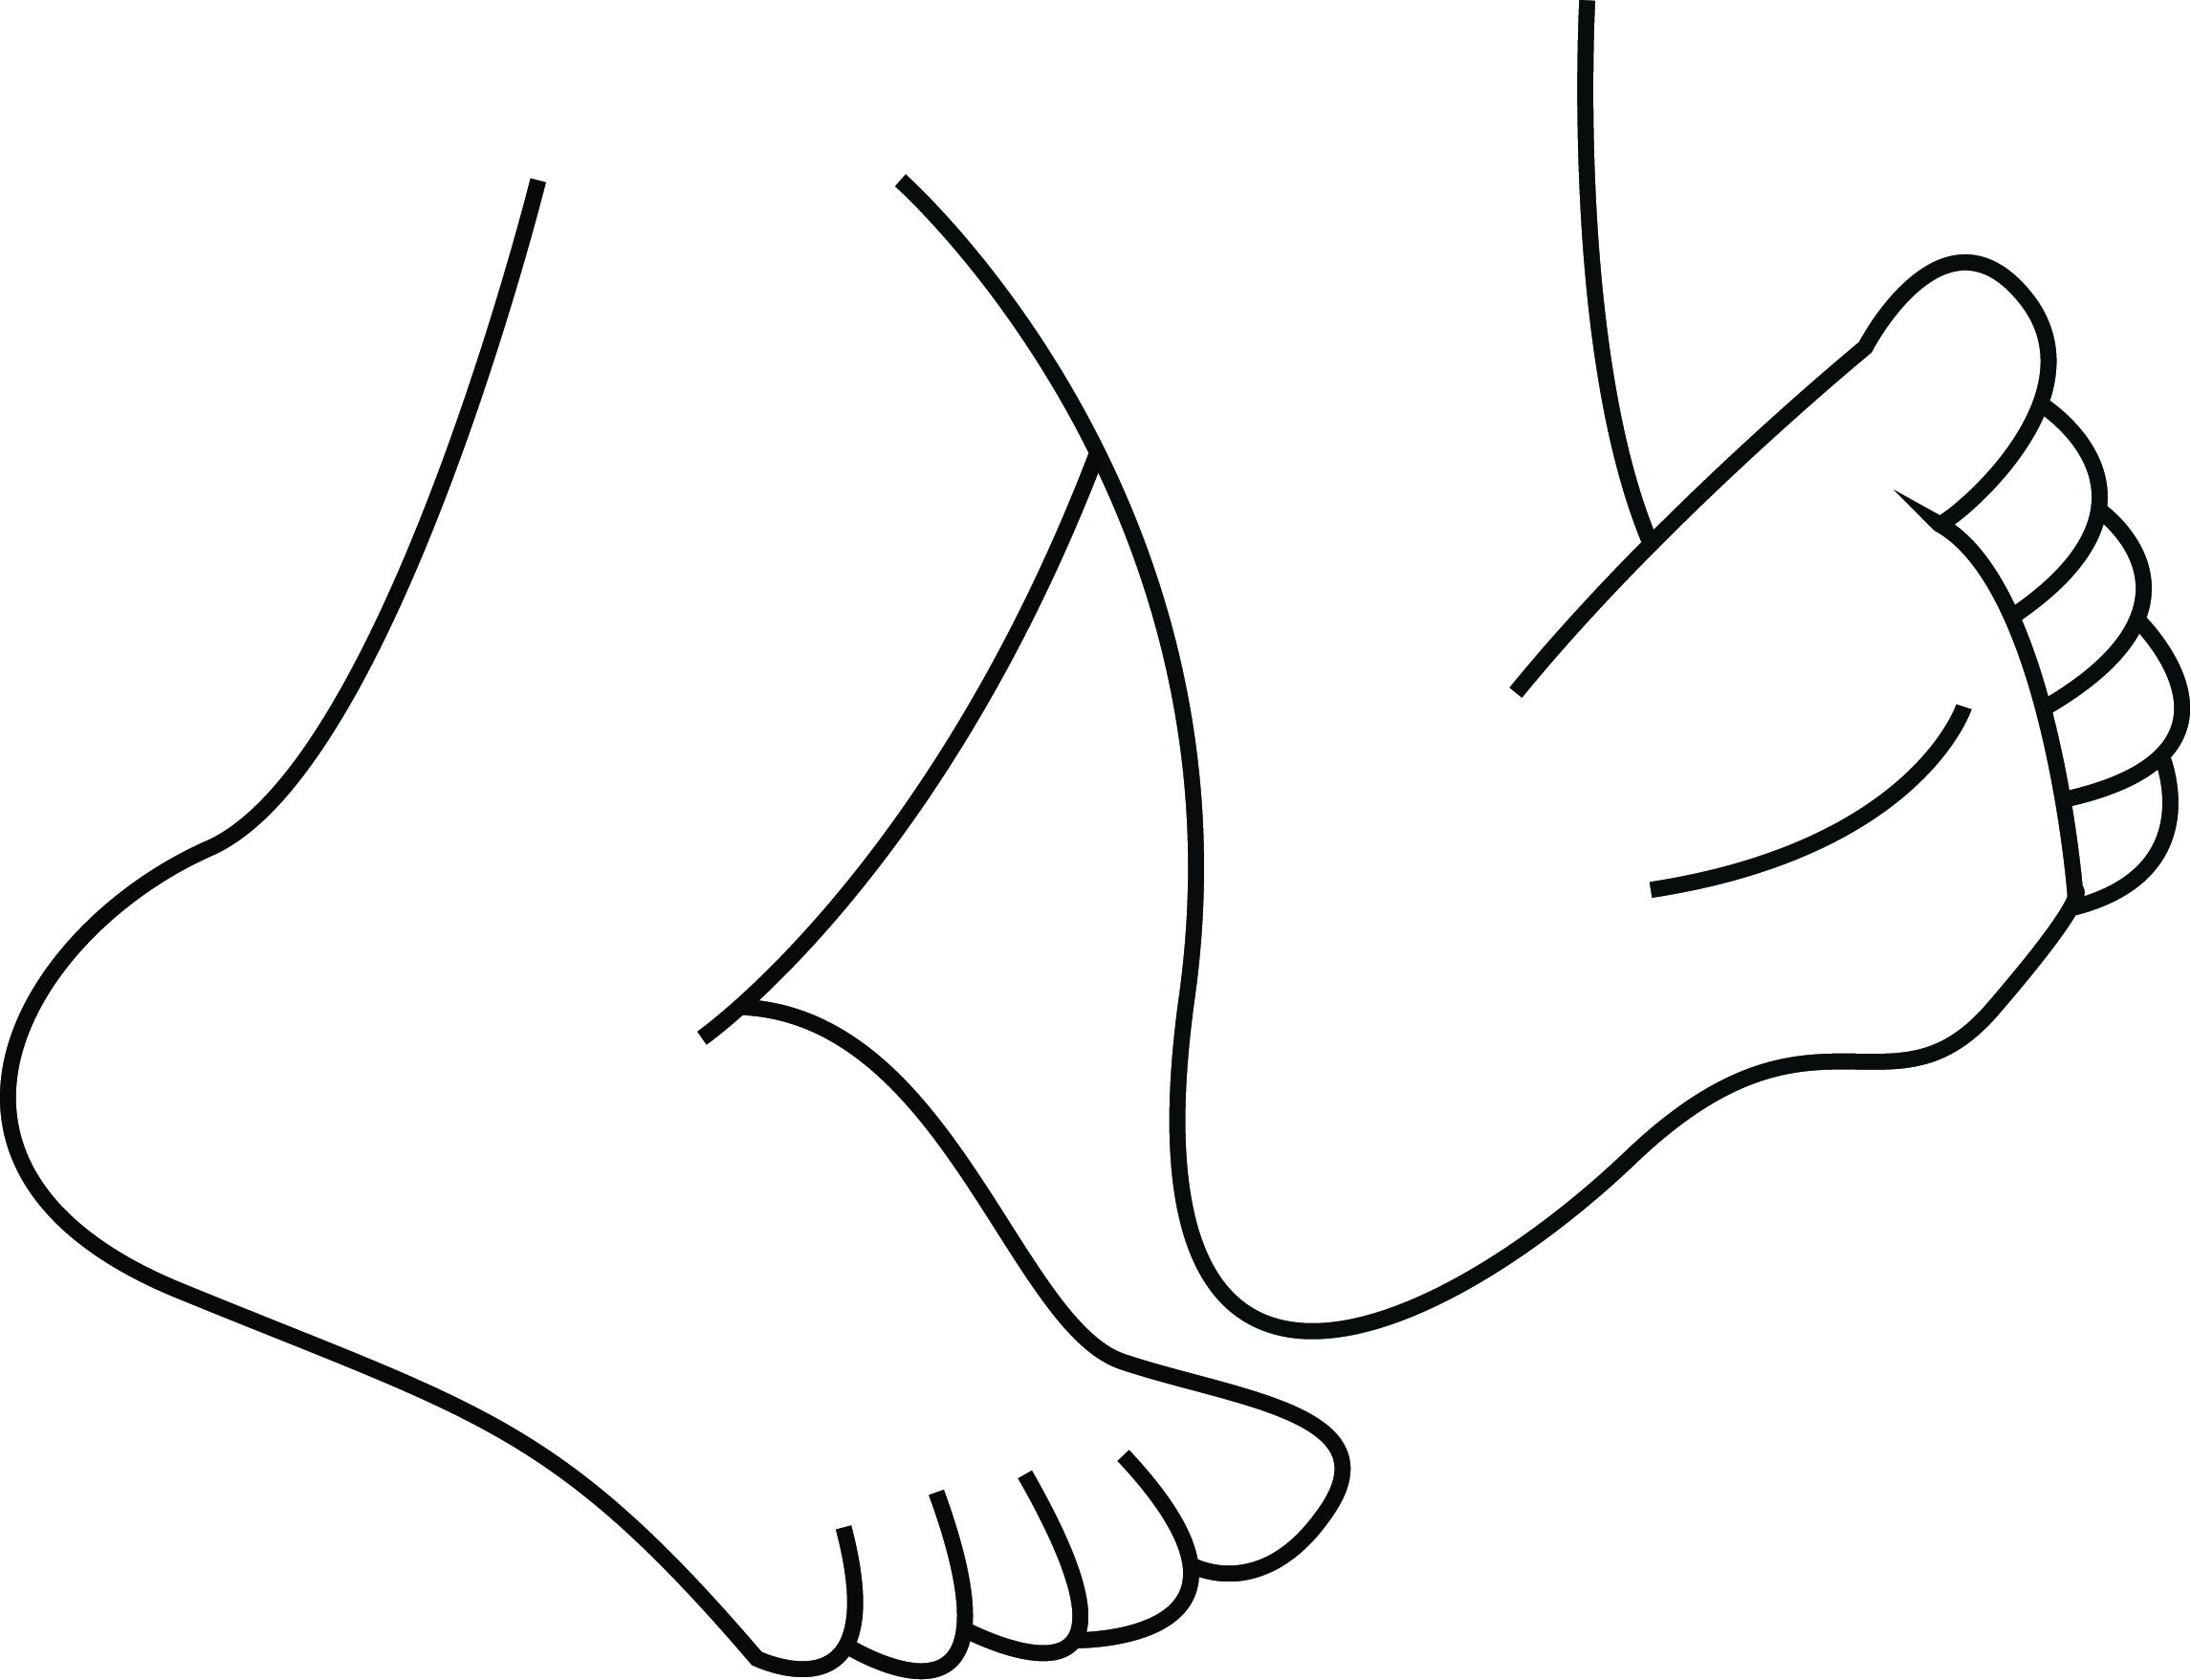 Free Foot Cartoon Cliparts Download Free Clip Art Free Clip Art On Clipart Library